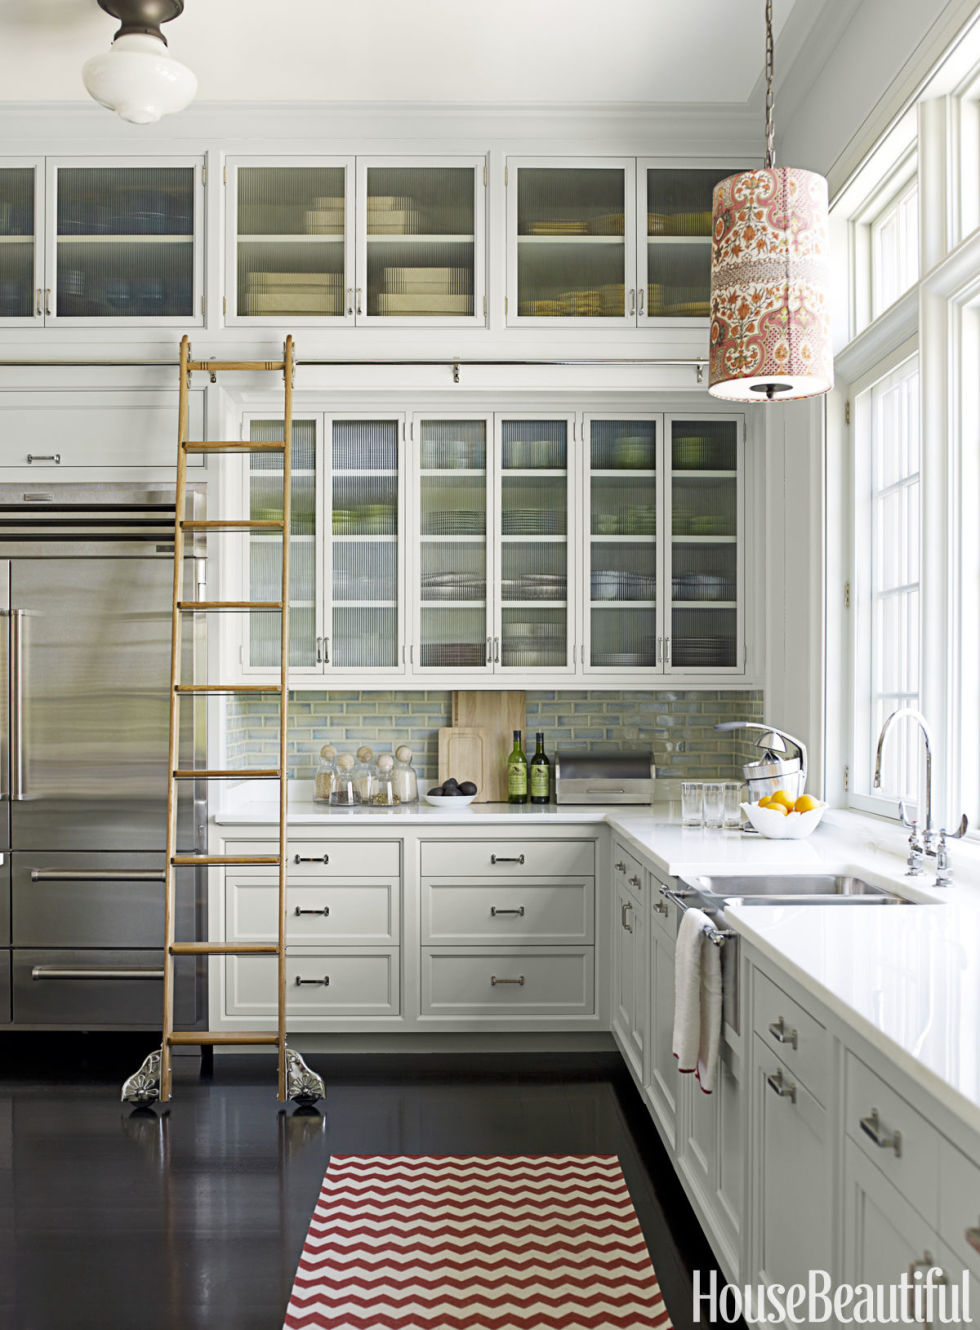 House Kitchen 20 Unique Kitchen Storage Ideas Easy Storage Solutions For Kitchens